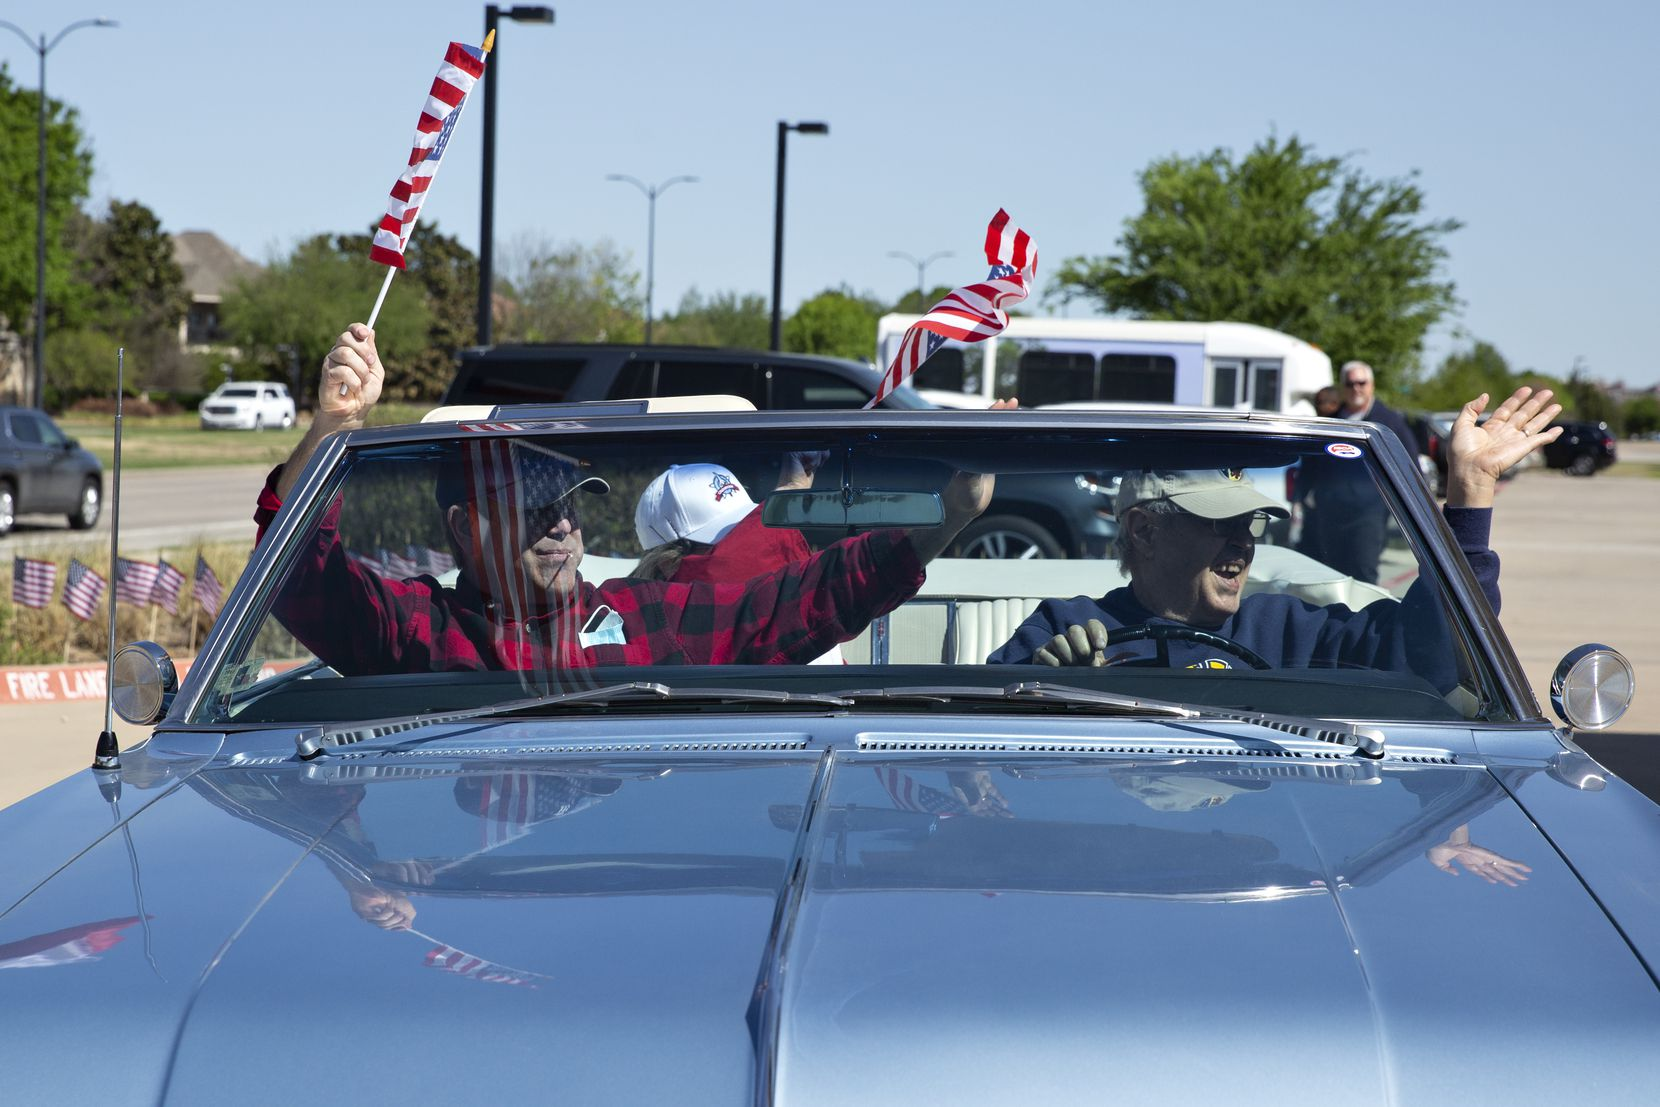 People decked out their vehicles with flags, streamers, balloons and signs for the parade.